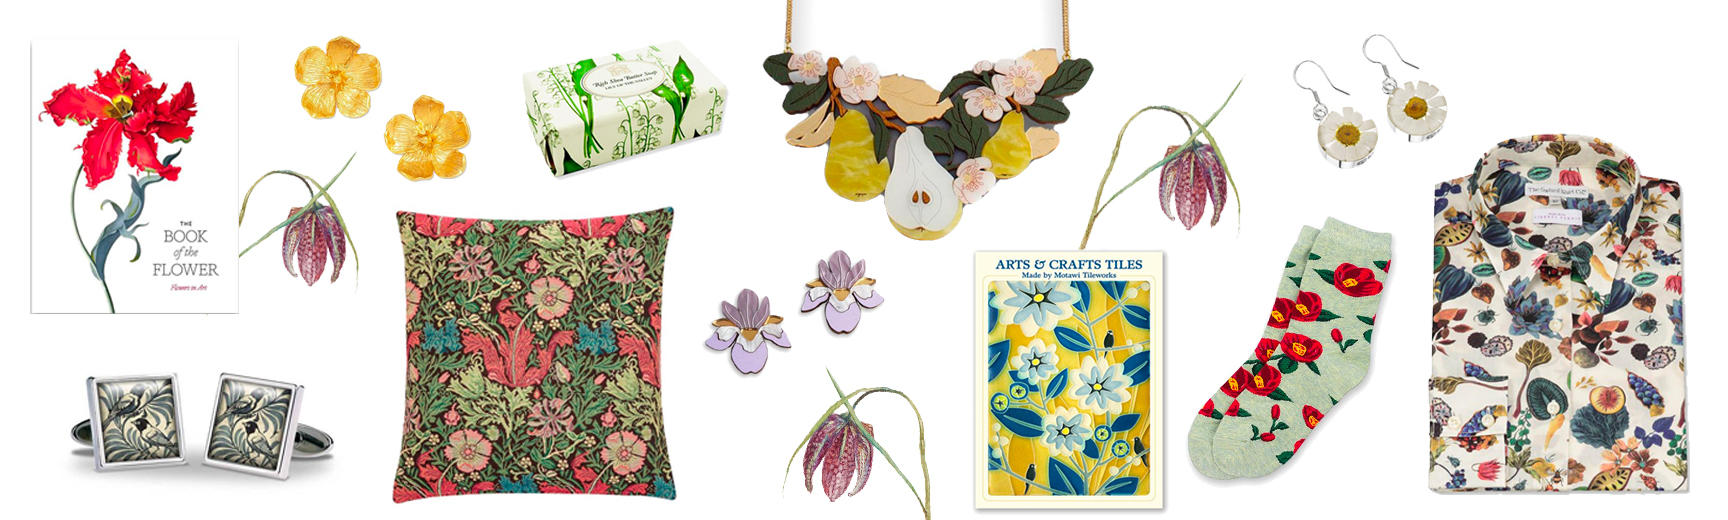 Selection of Floral Shop Products